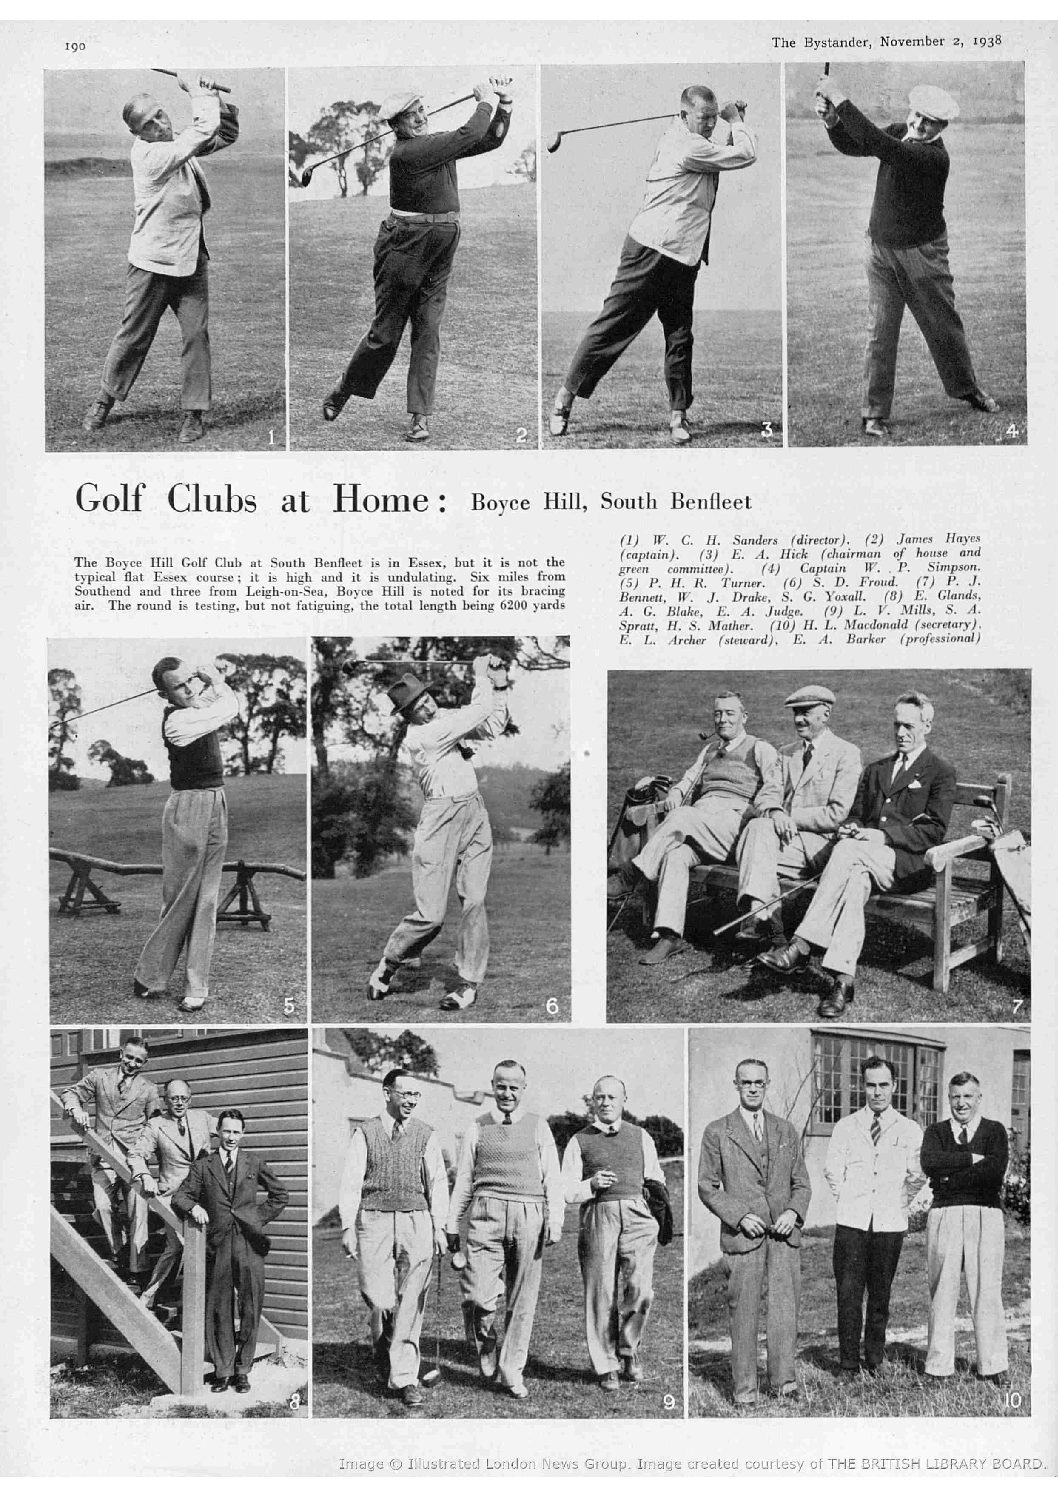 Boyce Hill Golf Club as featured in The Bystander, November 2nd 1938